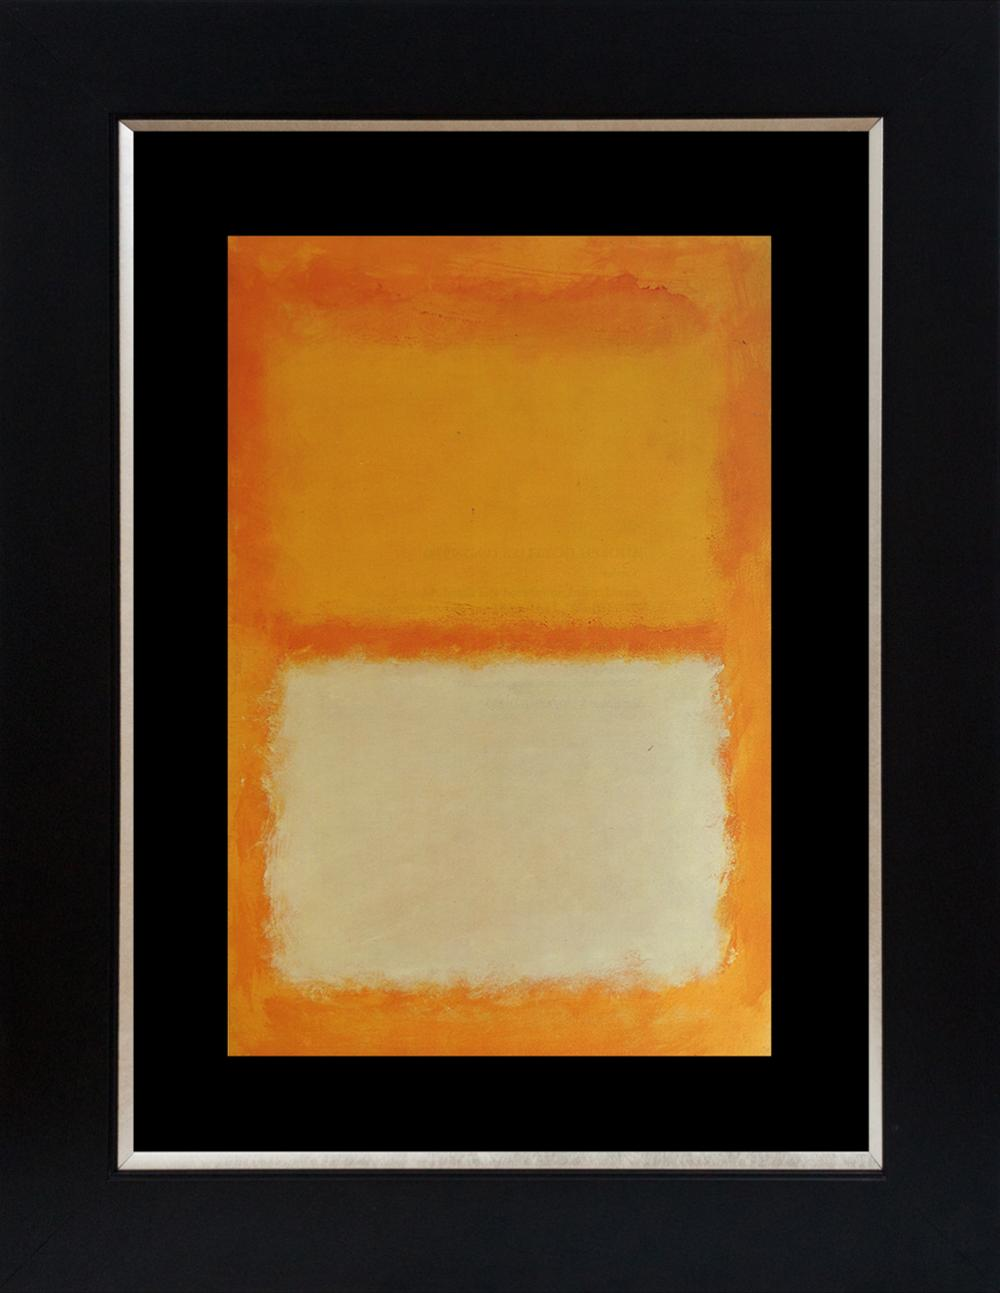 Mark Rothko LIthograph from 1978